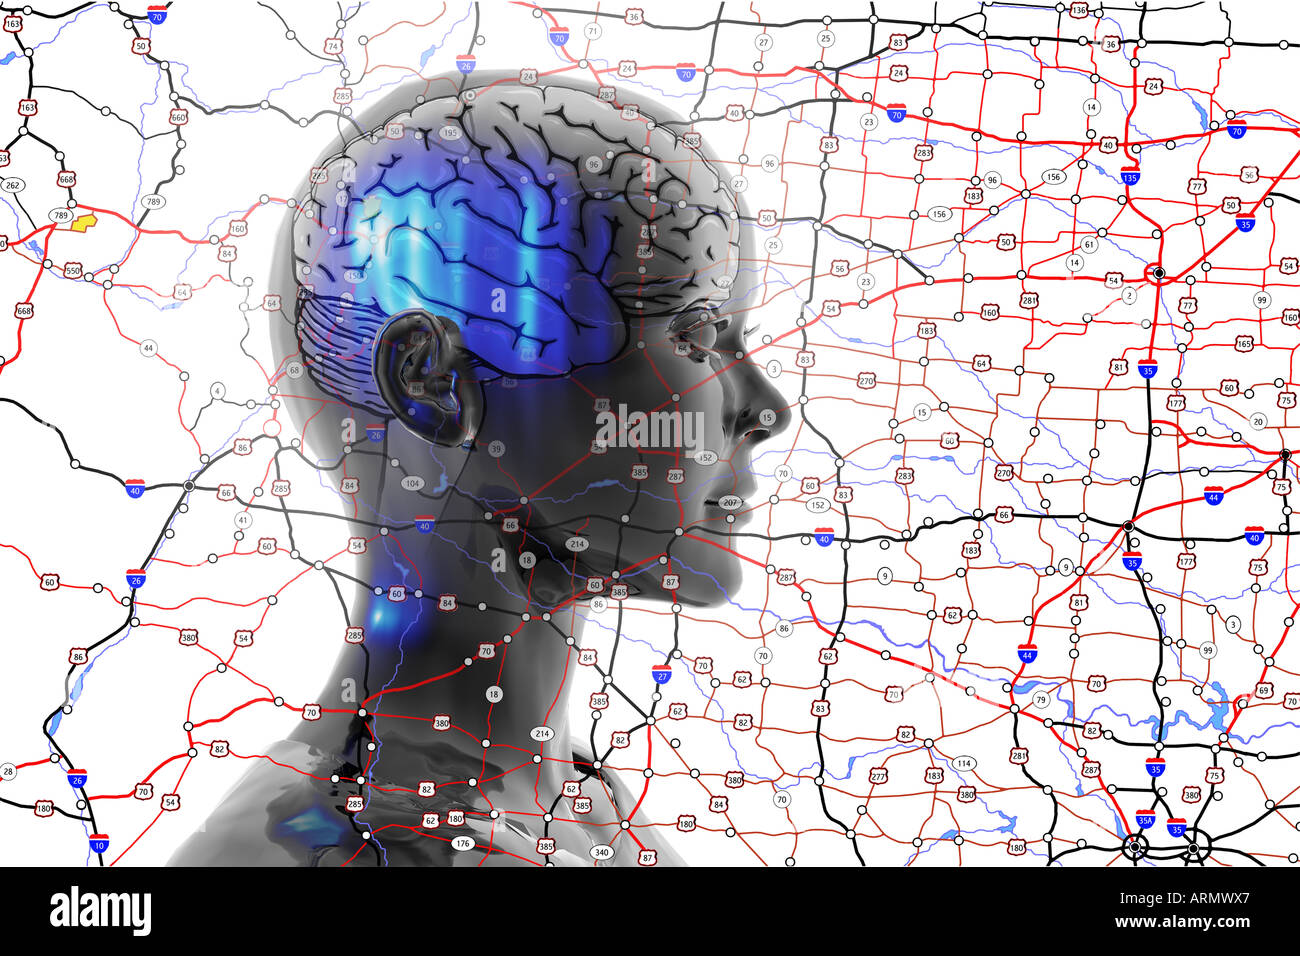 an overview of extra sensory perception Extrasensory perception or esp refers to the reception and processing of information not obtained through the physical senses, but are sensed by through an individual's mind.